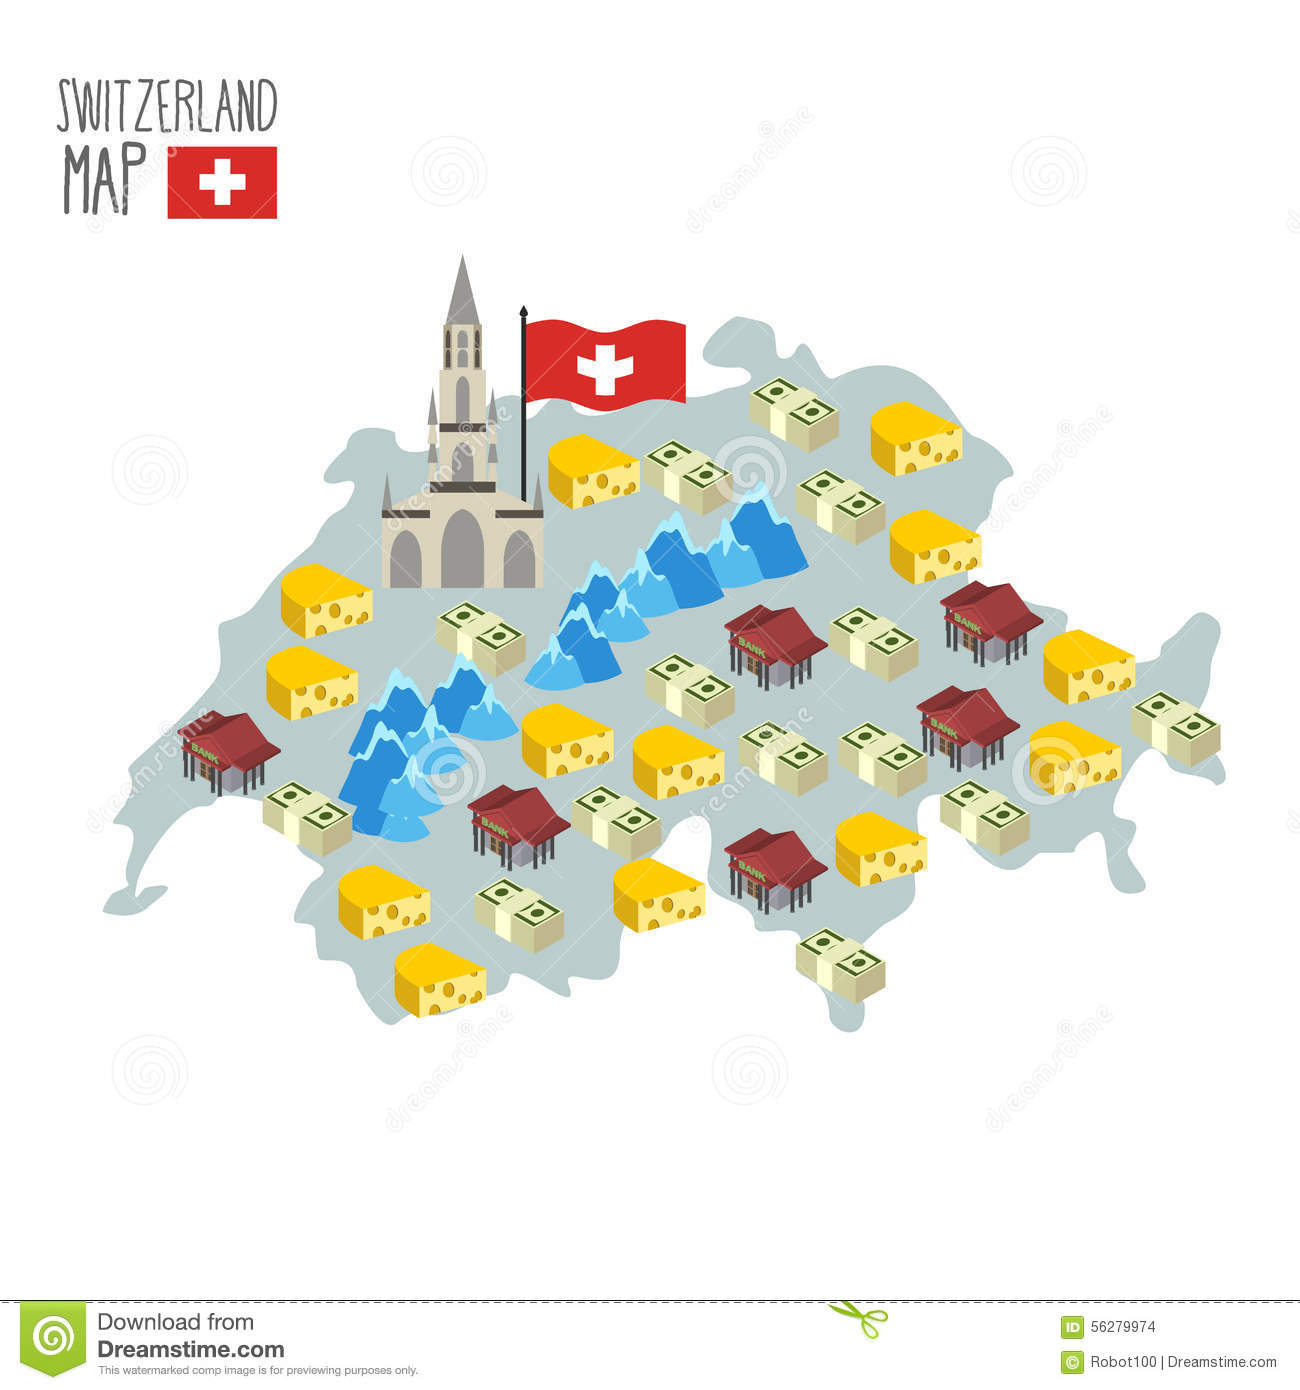 Swiss cheese map of switzerland stock image image of cheese map of switzerland attraction of berne cathedral stock images buycottarizona Image collections